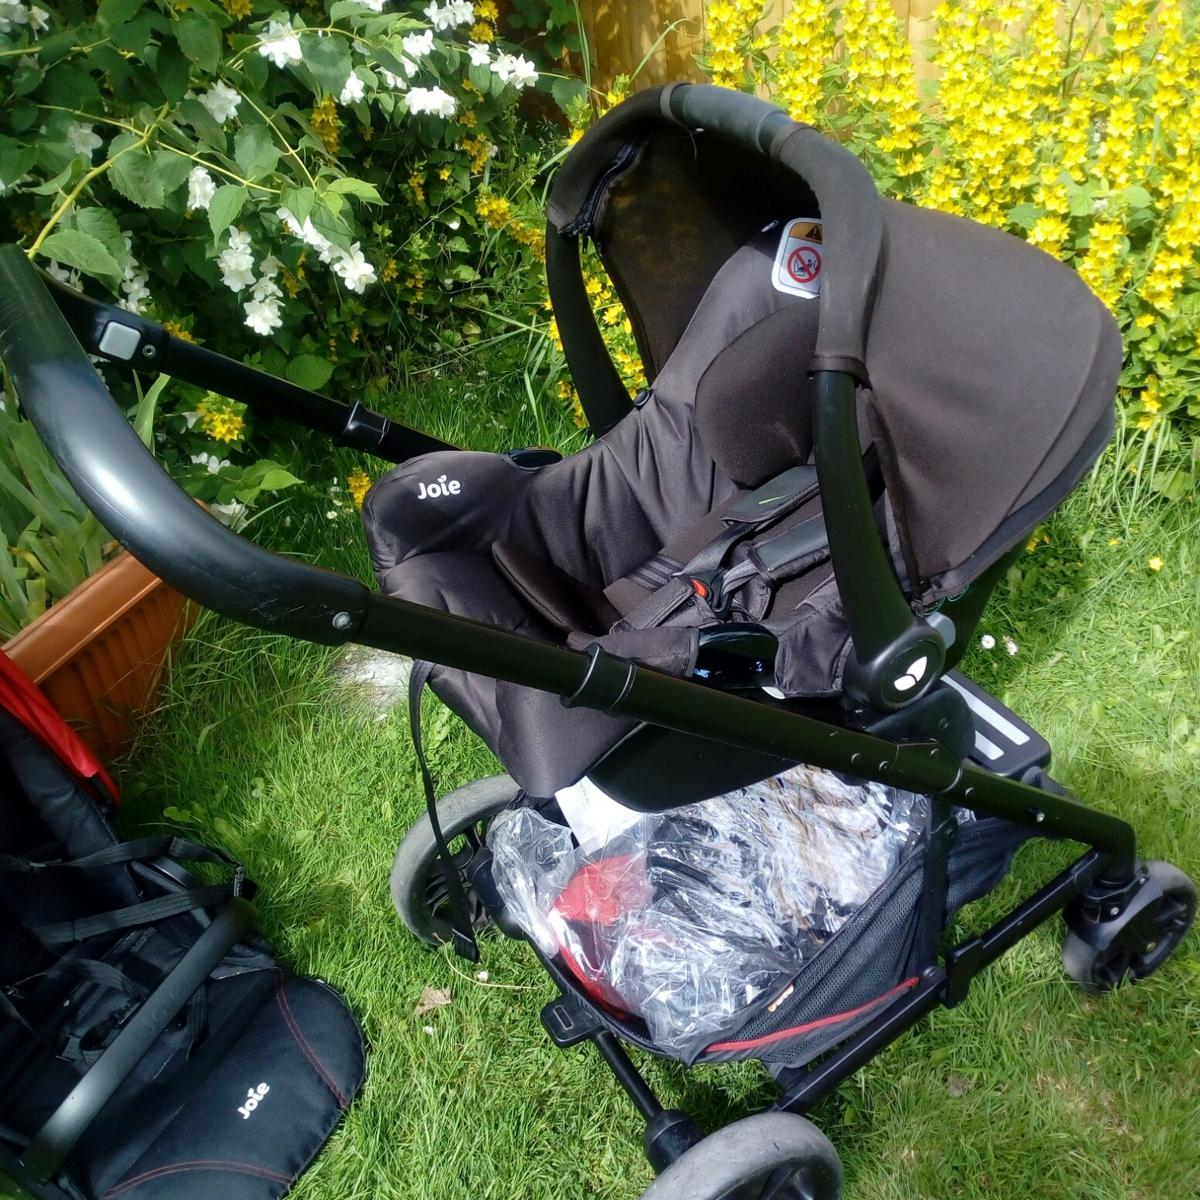 Travel System Joie Chrome Joie Chrome 3 In 1 Travel System In Chester For 170 00 For